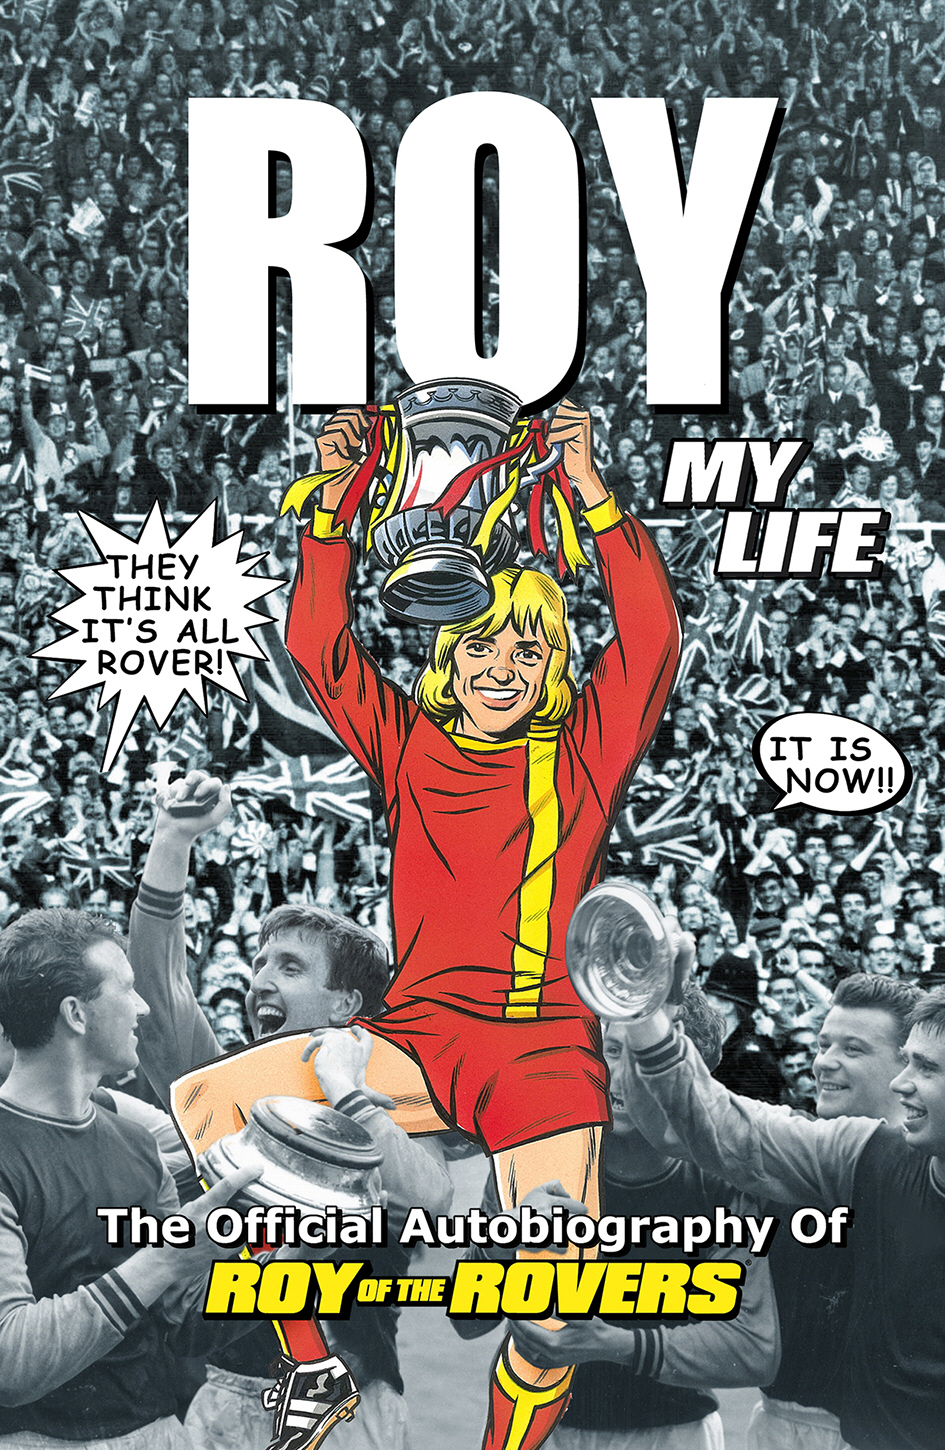 Roy of the Rovers The Official Autobiography of Roy of the Rovers